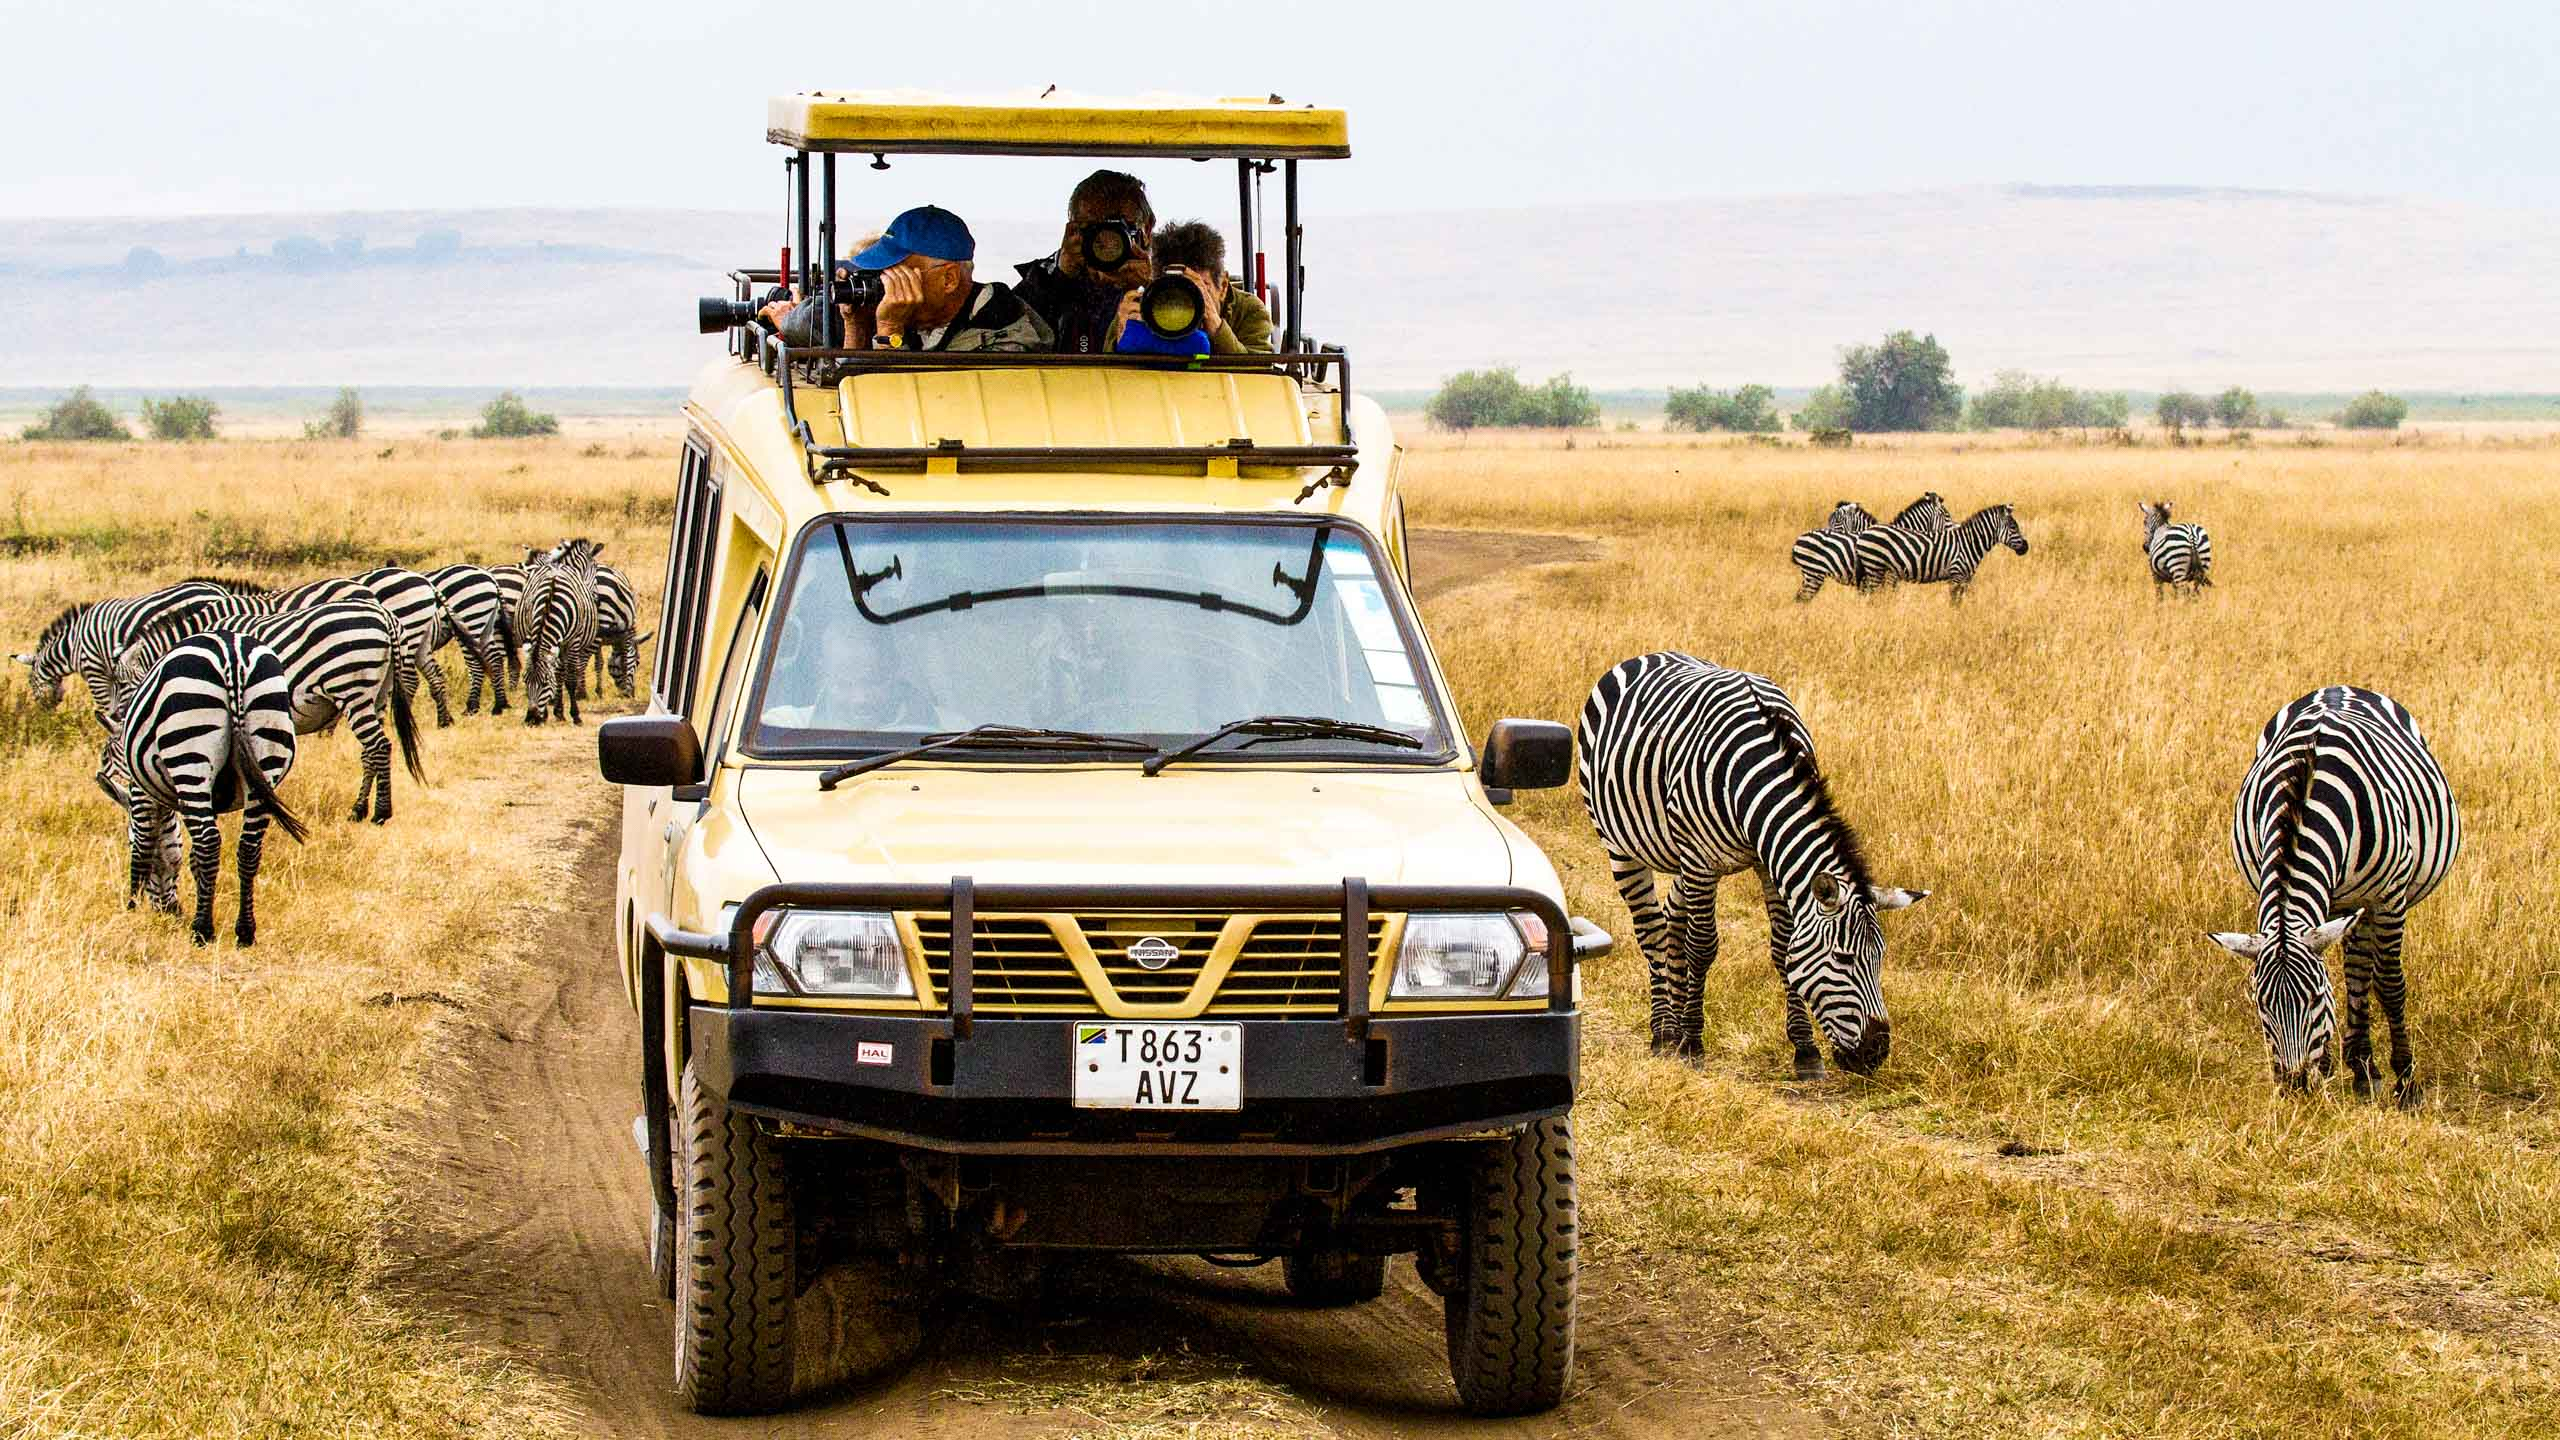 Tanzania travelers watch zebras from safari vehicle